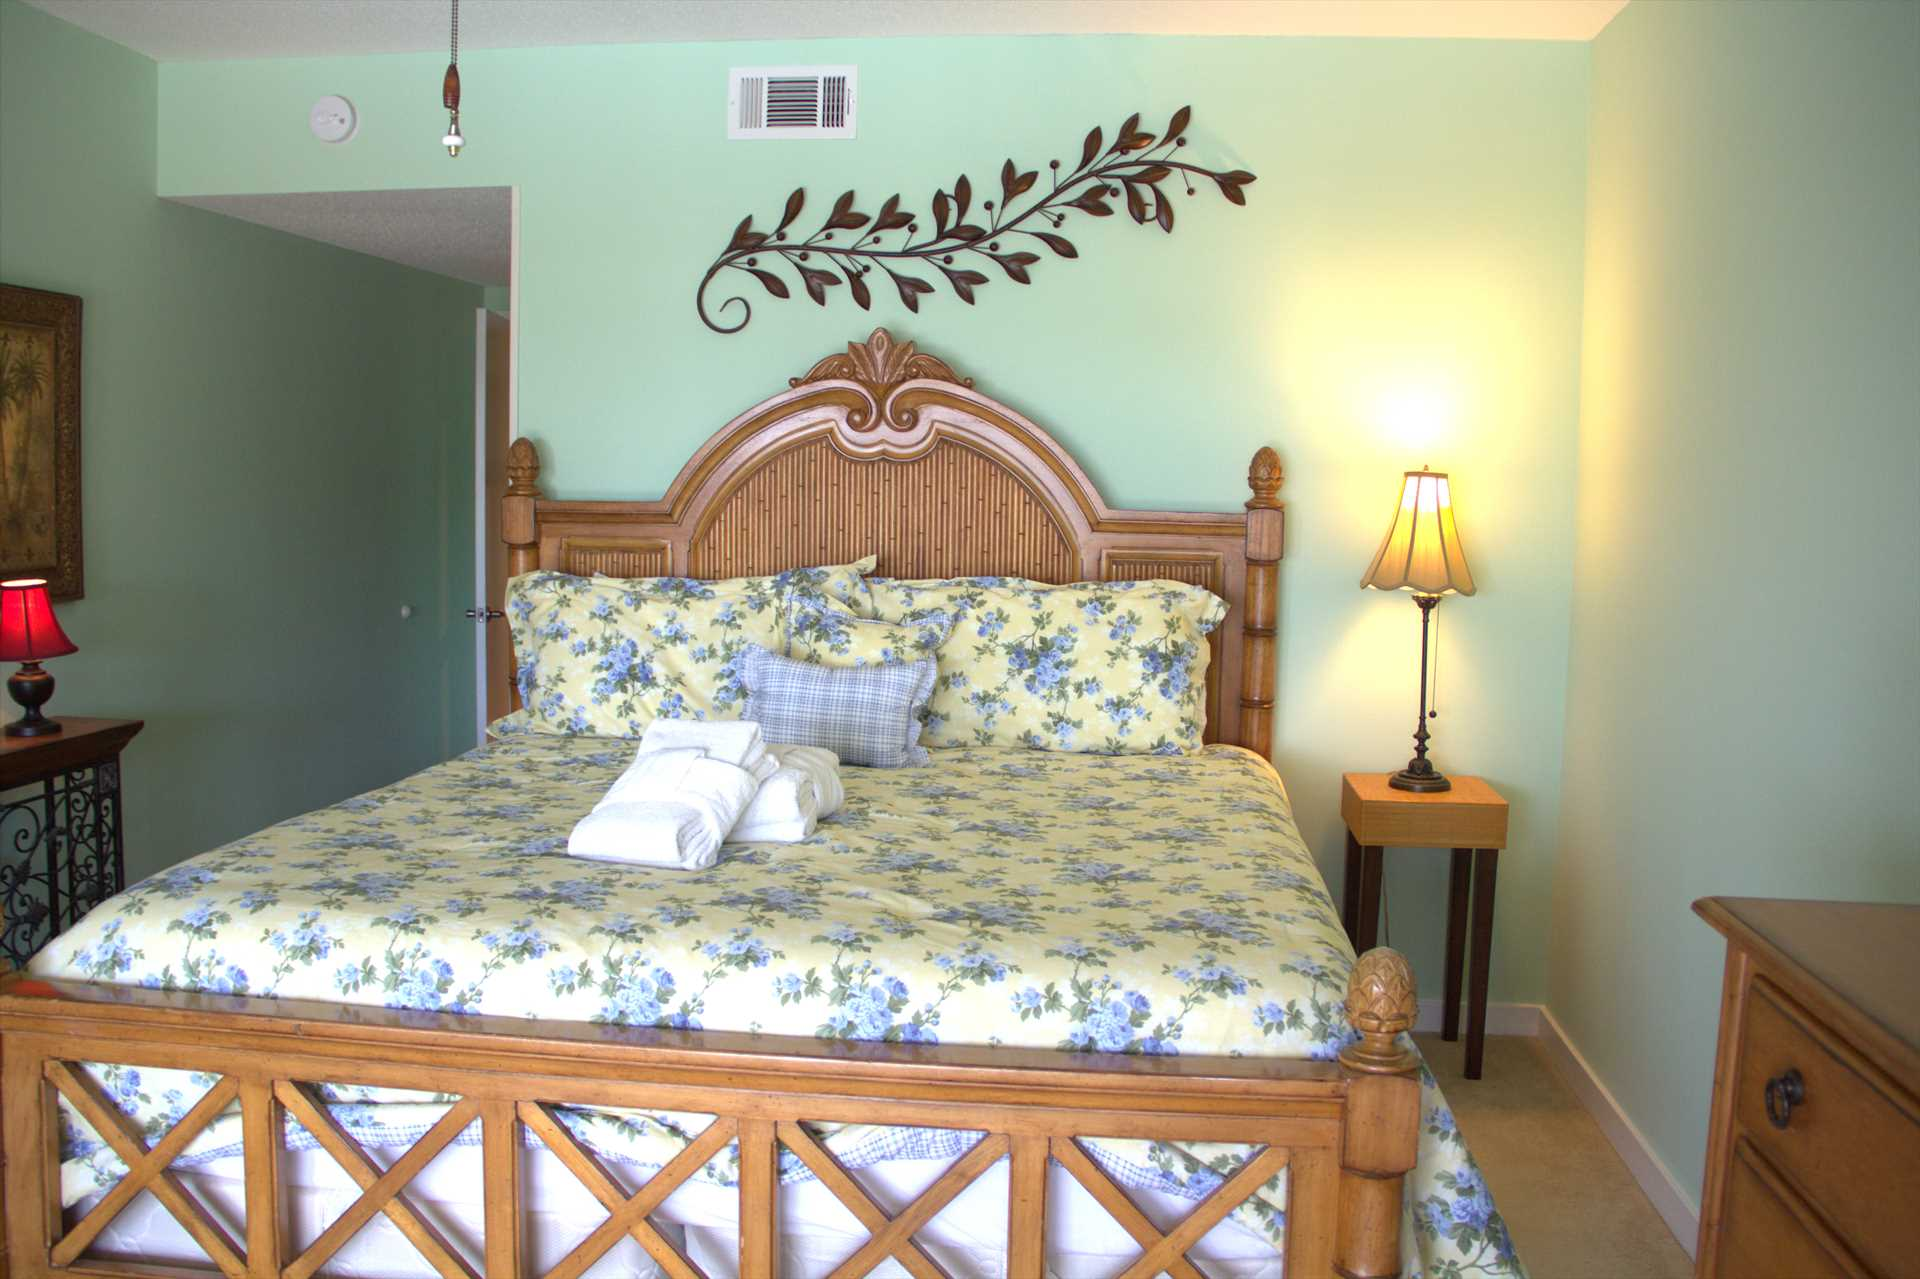 New Bedspread on master bed